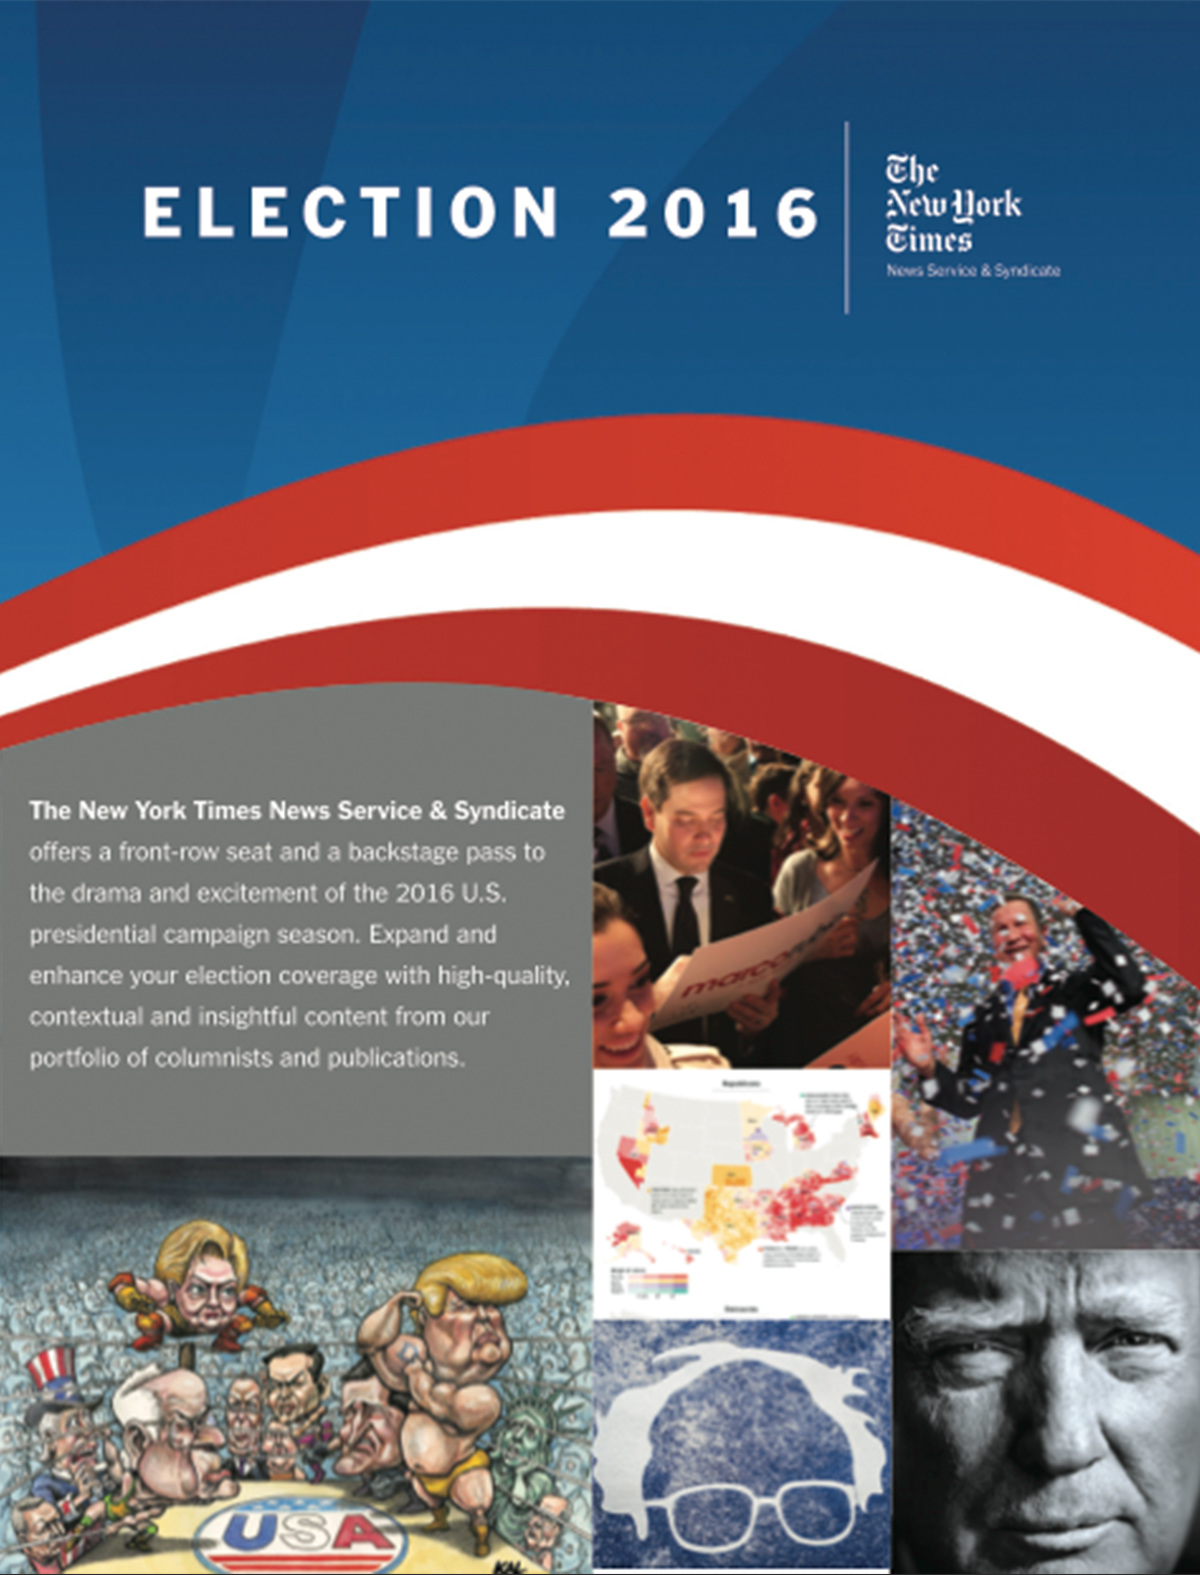 The New York Times Election Brochure Graphic Design Illustration – Election Brochure